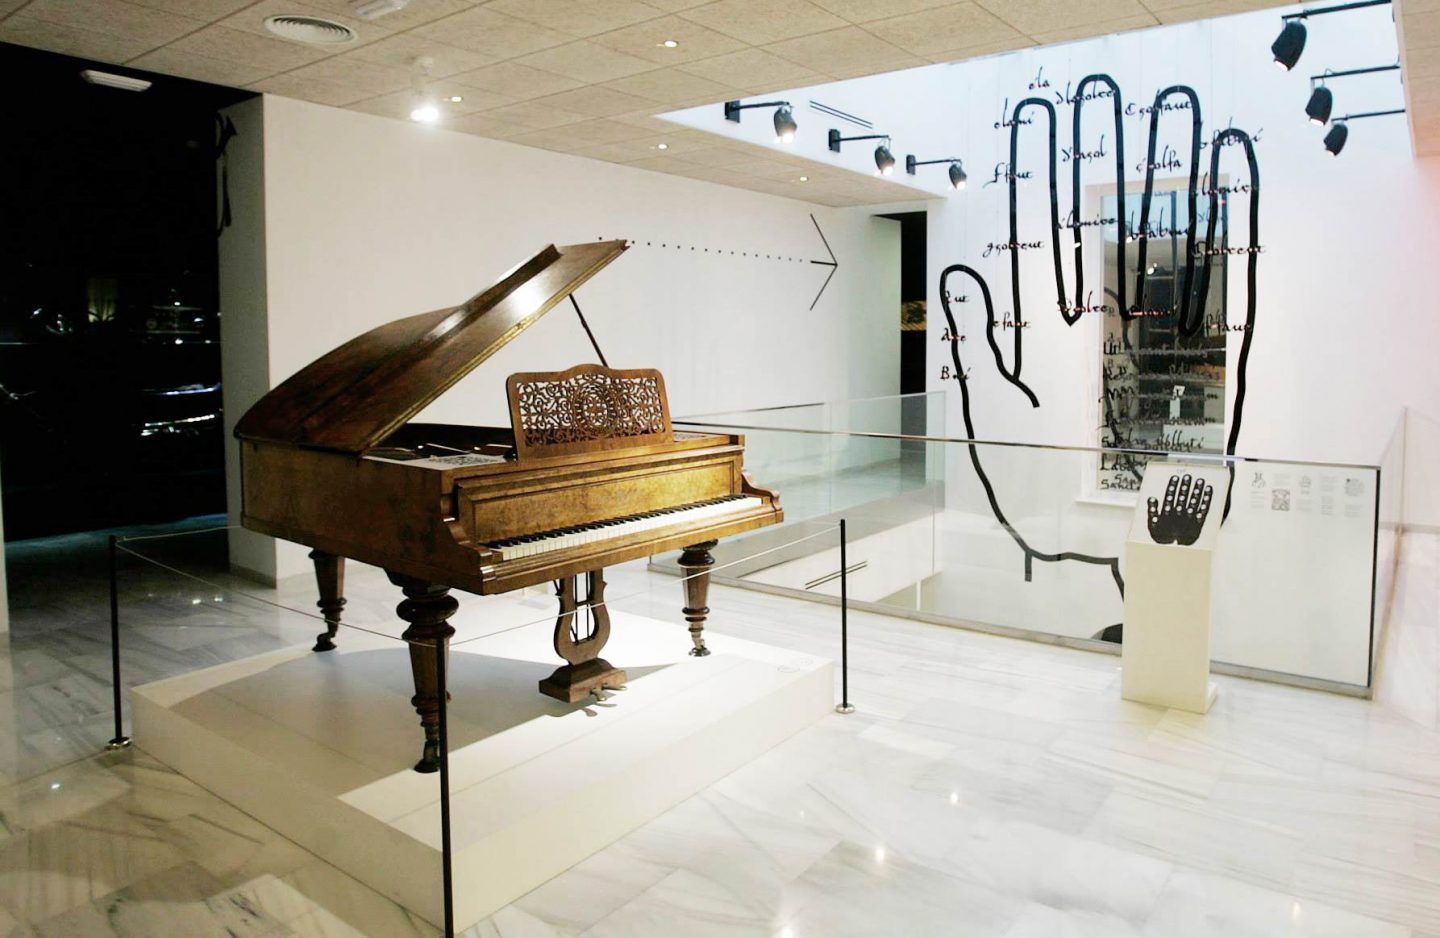 a piano inside the museum